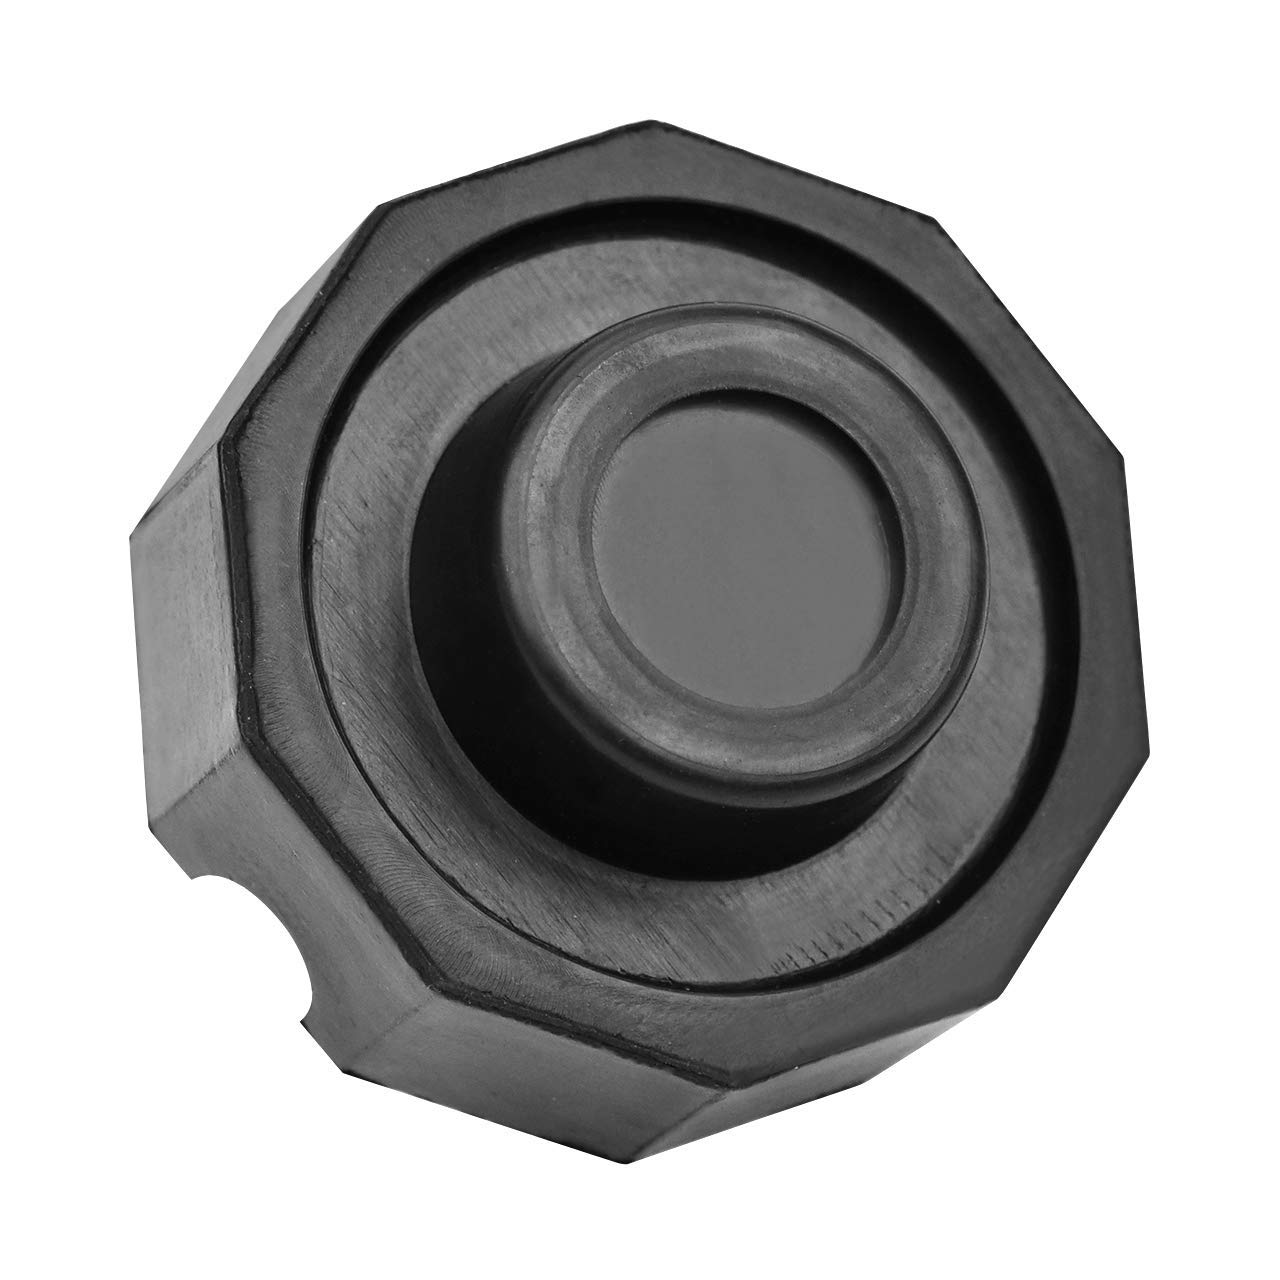 DEDC 2 Pack Jack Pad Slotted Frame Rubber Pad Universal Round Pad More Stability Support